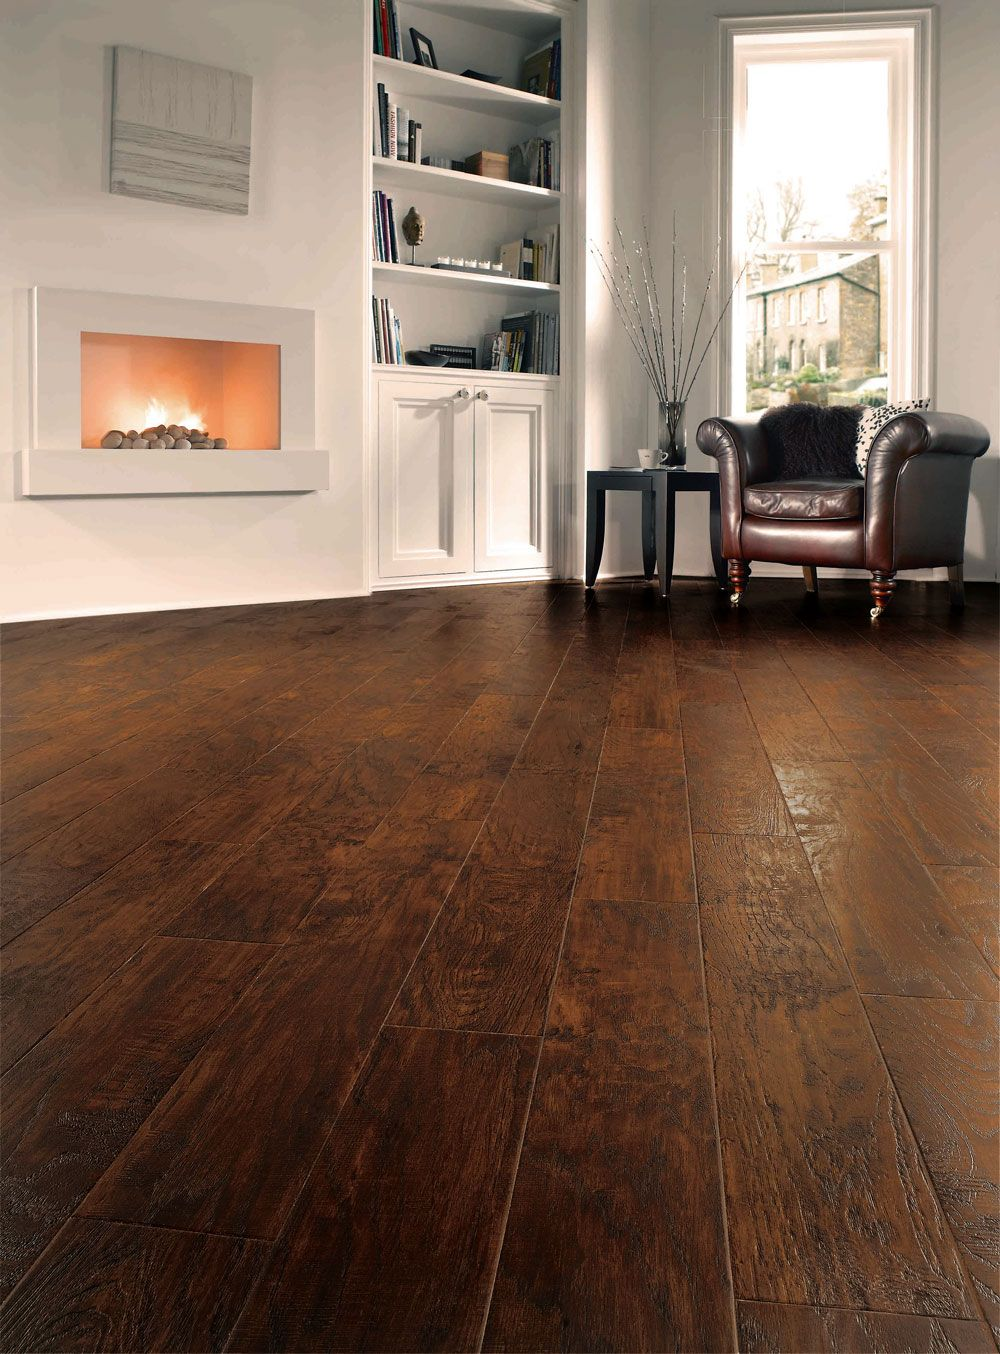 Karndean Hickory Peppercorn This Is Fixing To Go Down For The